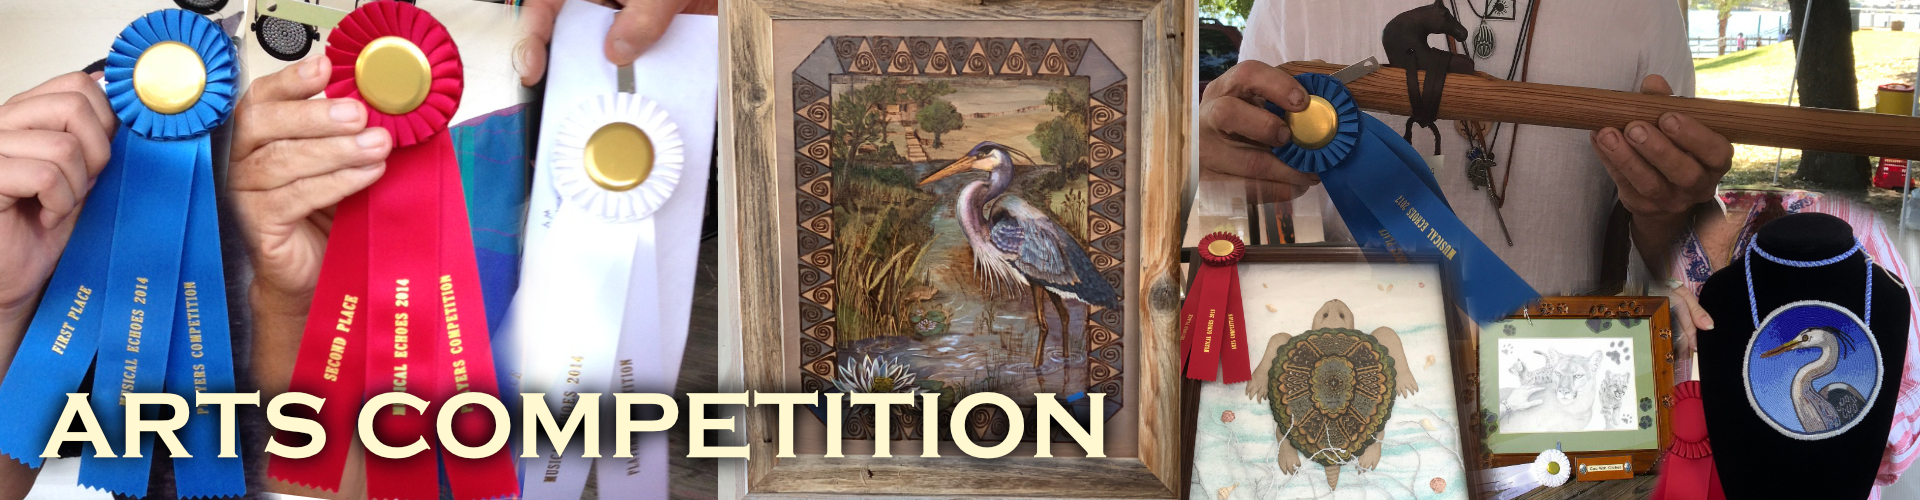 Arts Competition Image